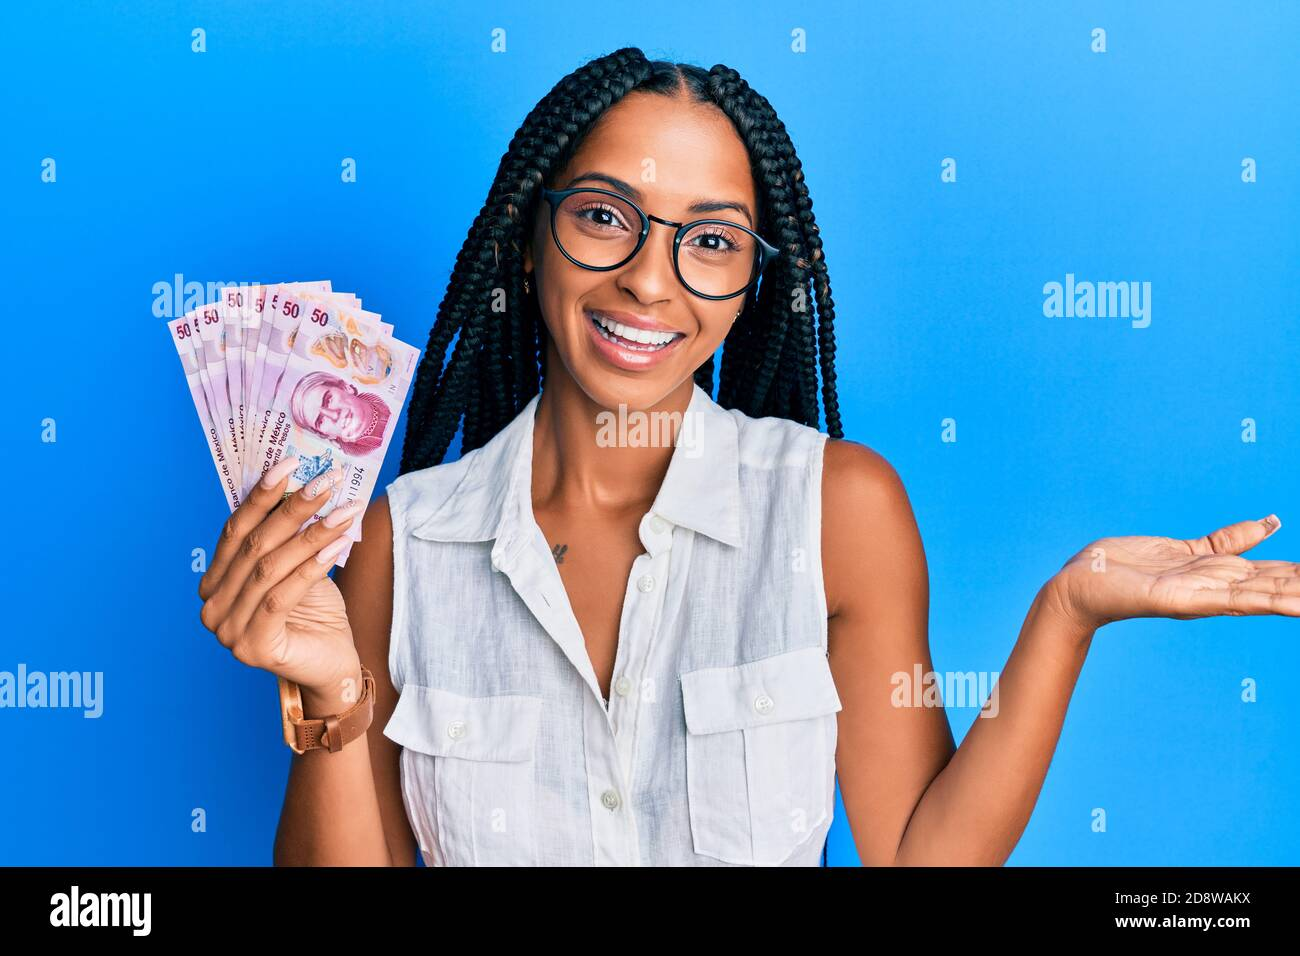 Beautiful hispanic woman holding 50 mexican pesos banknotes celebrating achievement with happy smile and winner expression with raised hand Stock Photo